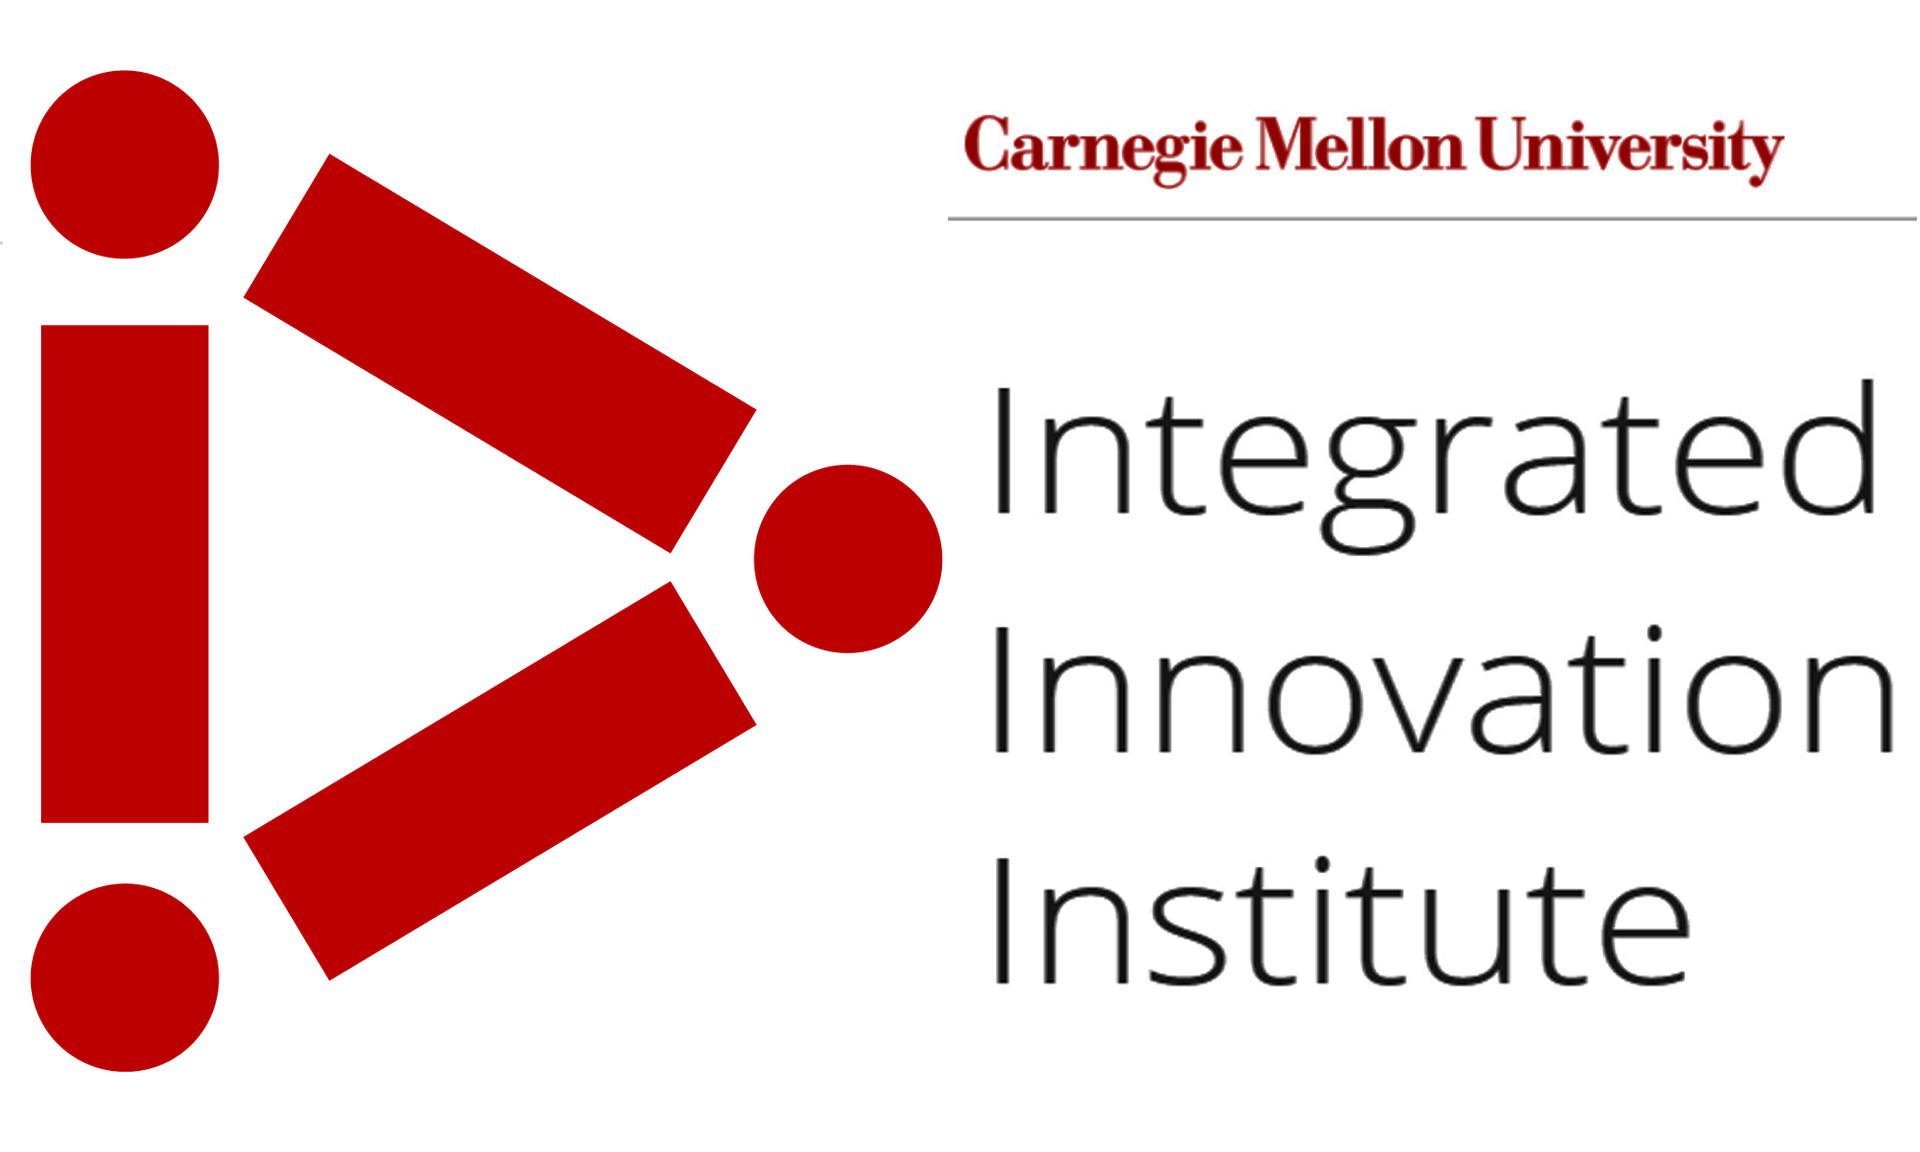 CMU Integrated Innovation Institute